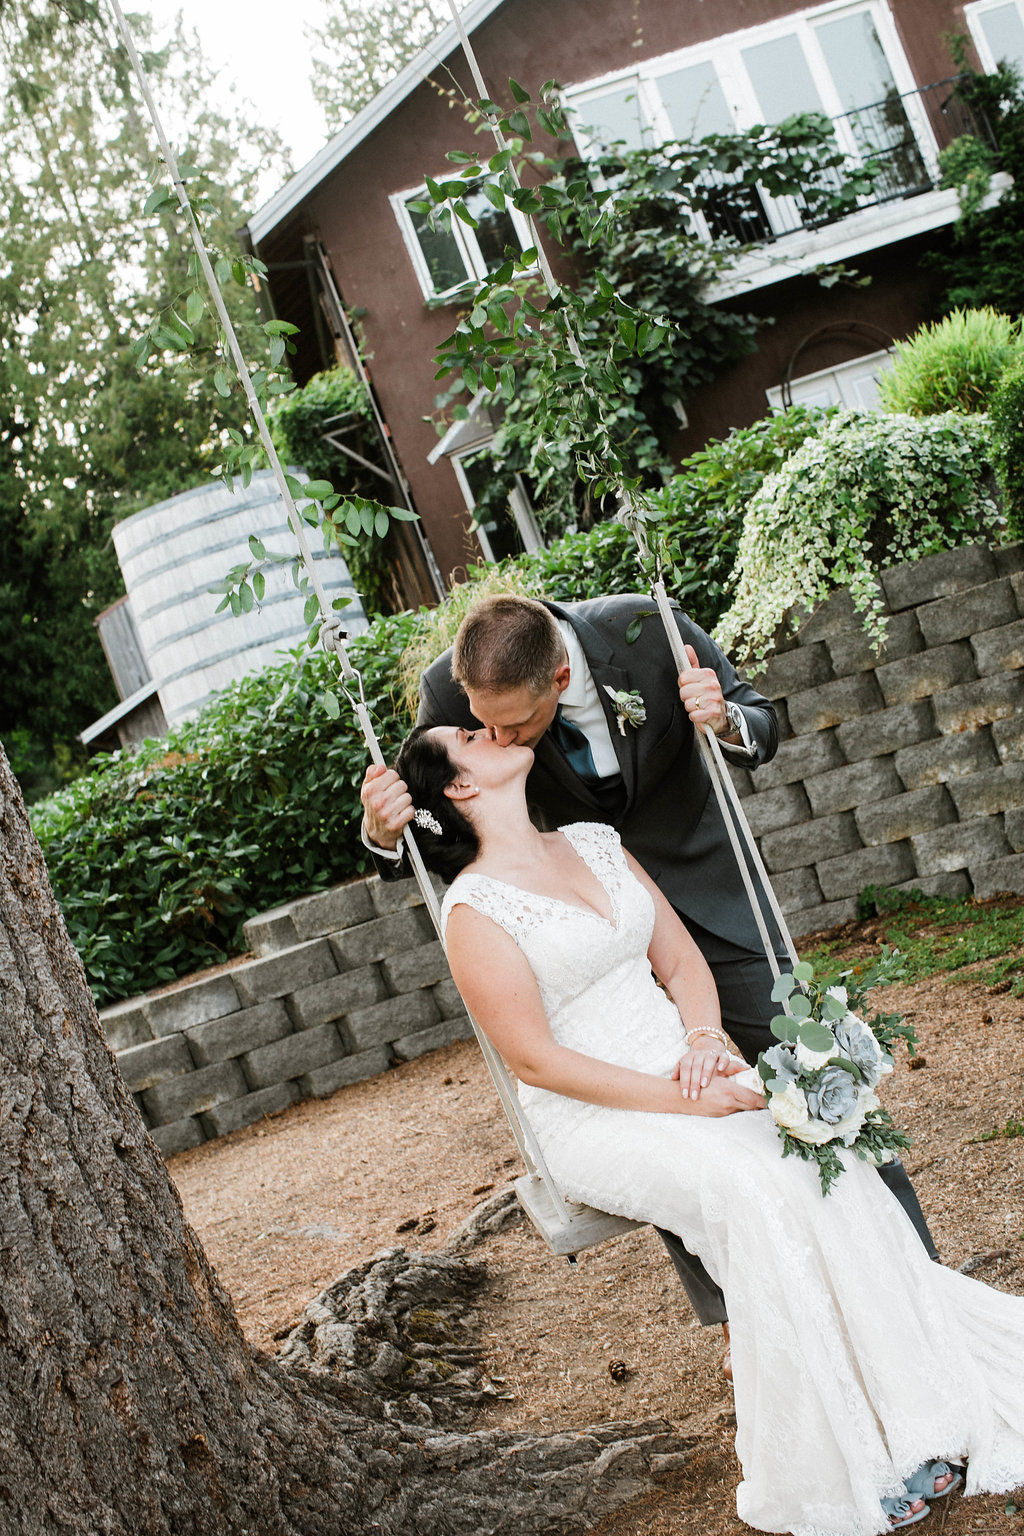 wedding photographers in seattle - green gates at flowing lake wedding in snohomish by seattle wedding photographer adina preston